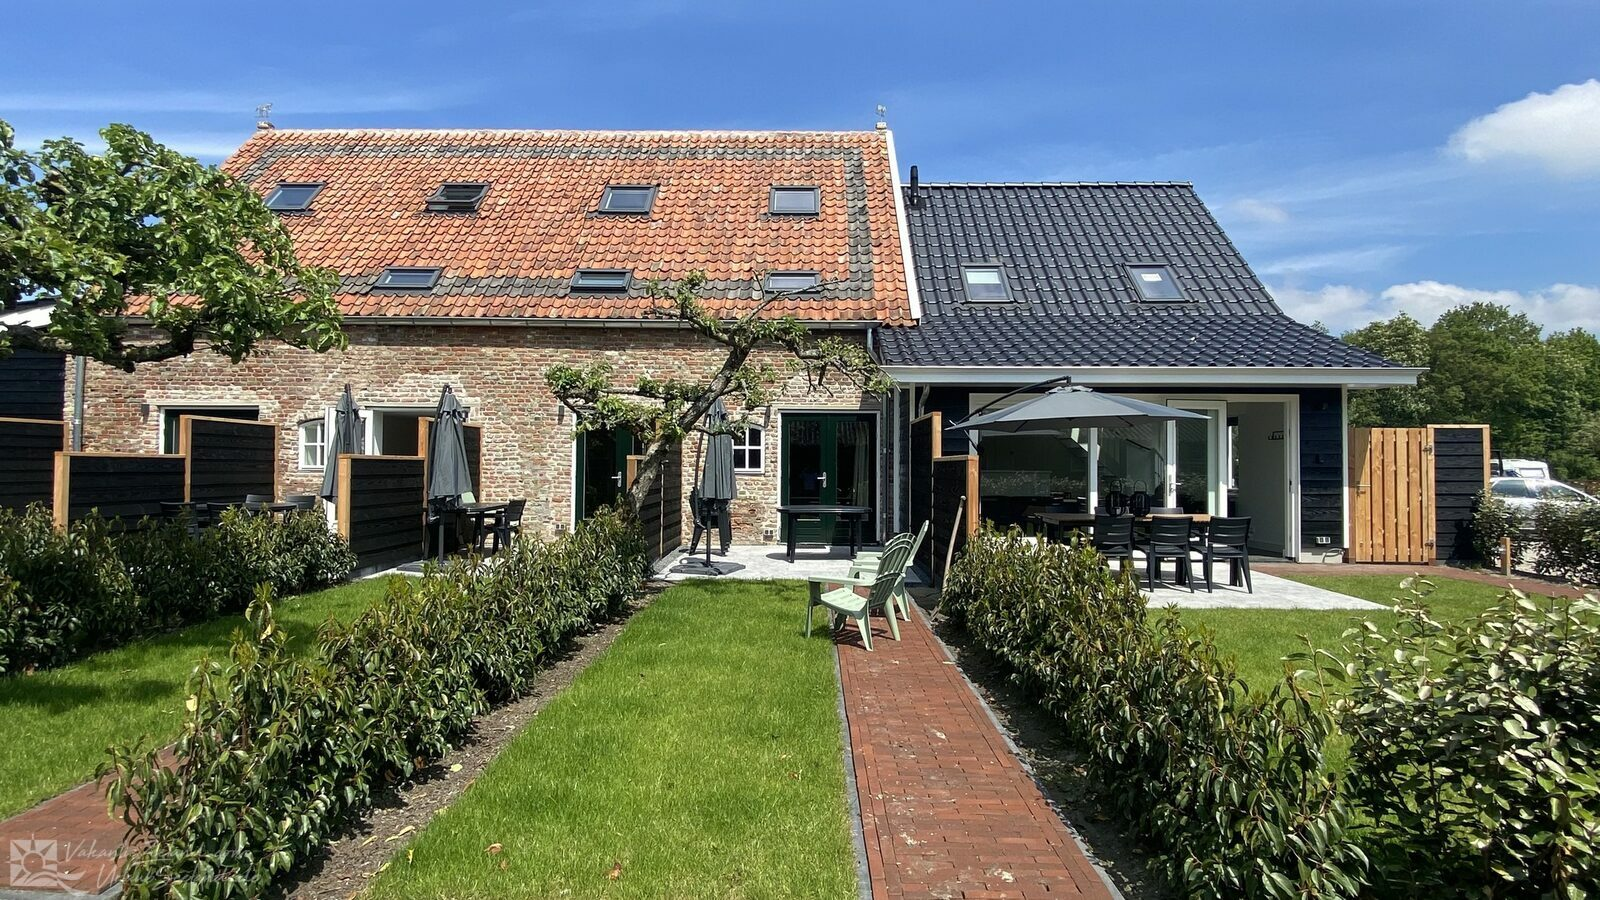 VZ1022 Holiday apartment in Veere